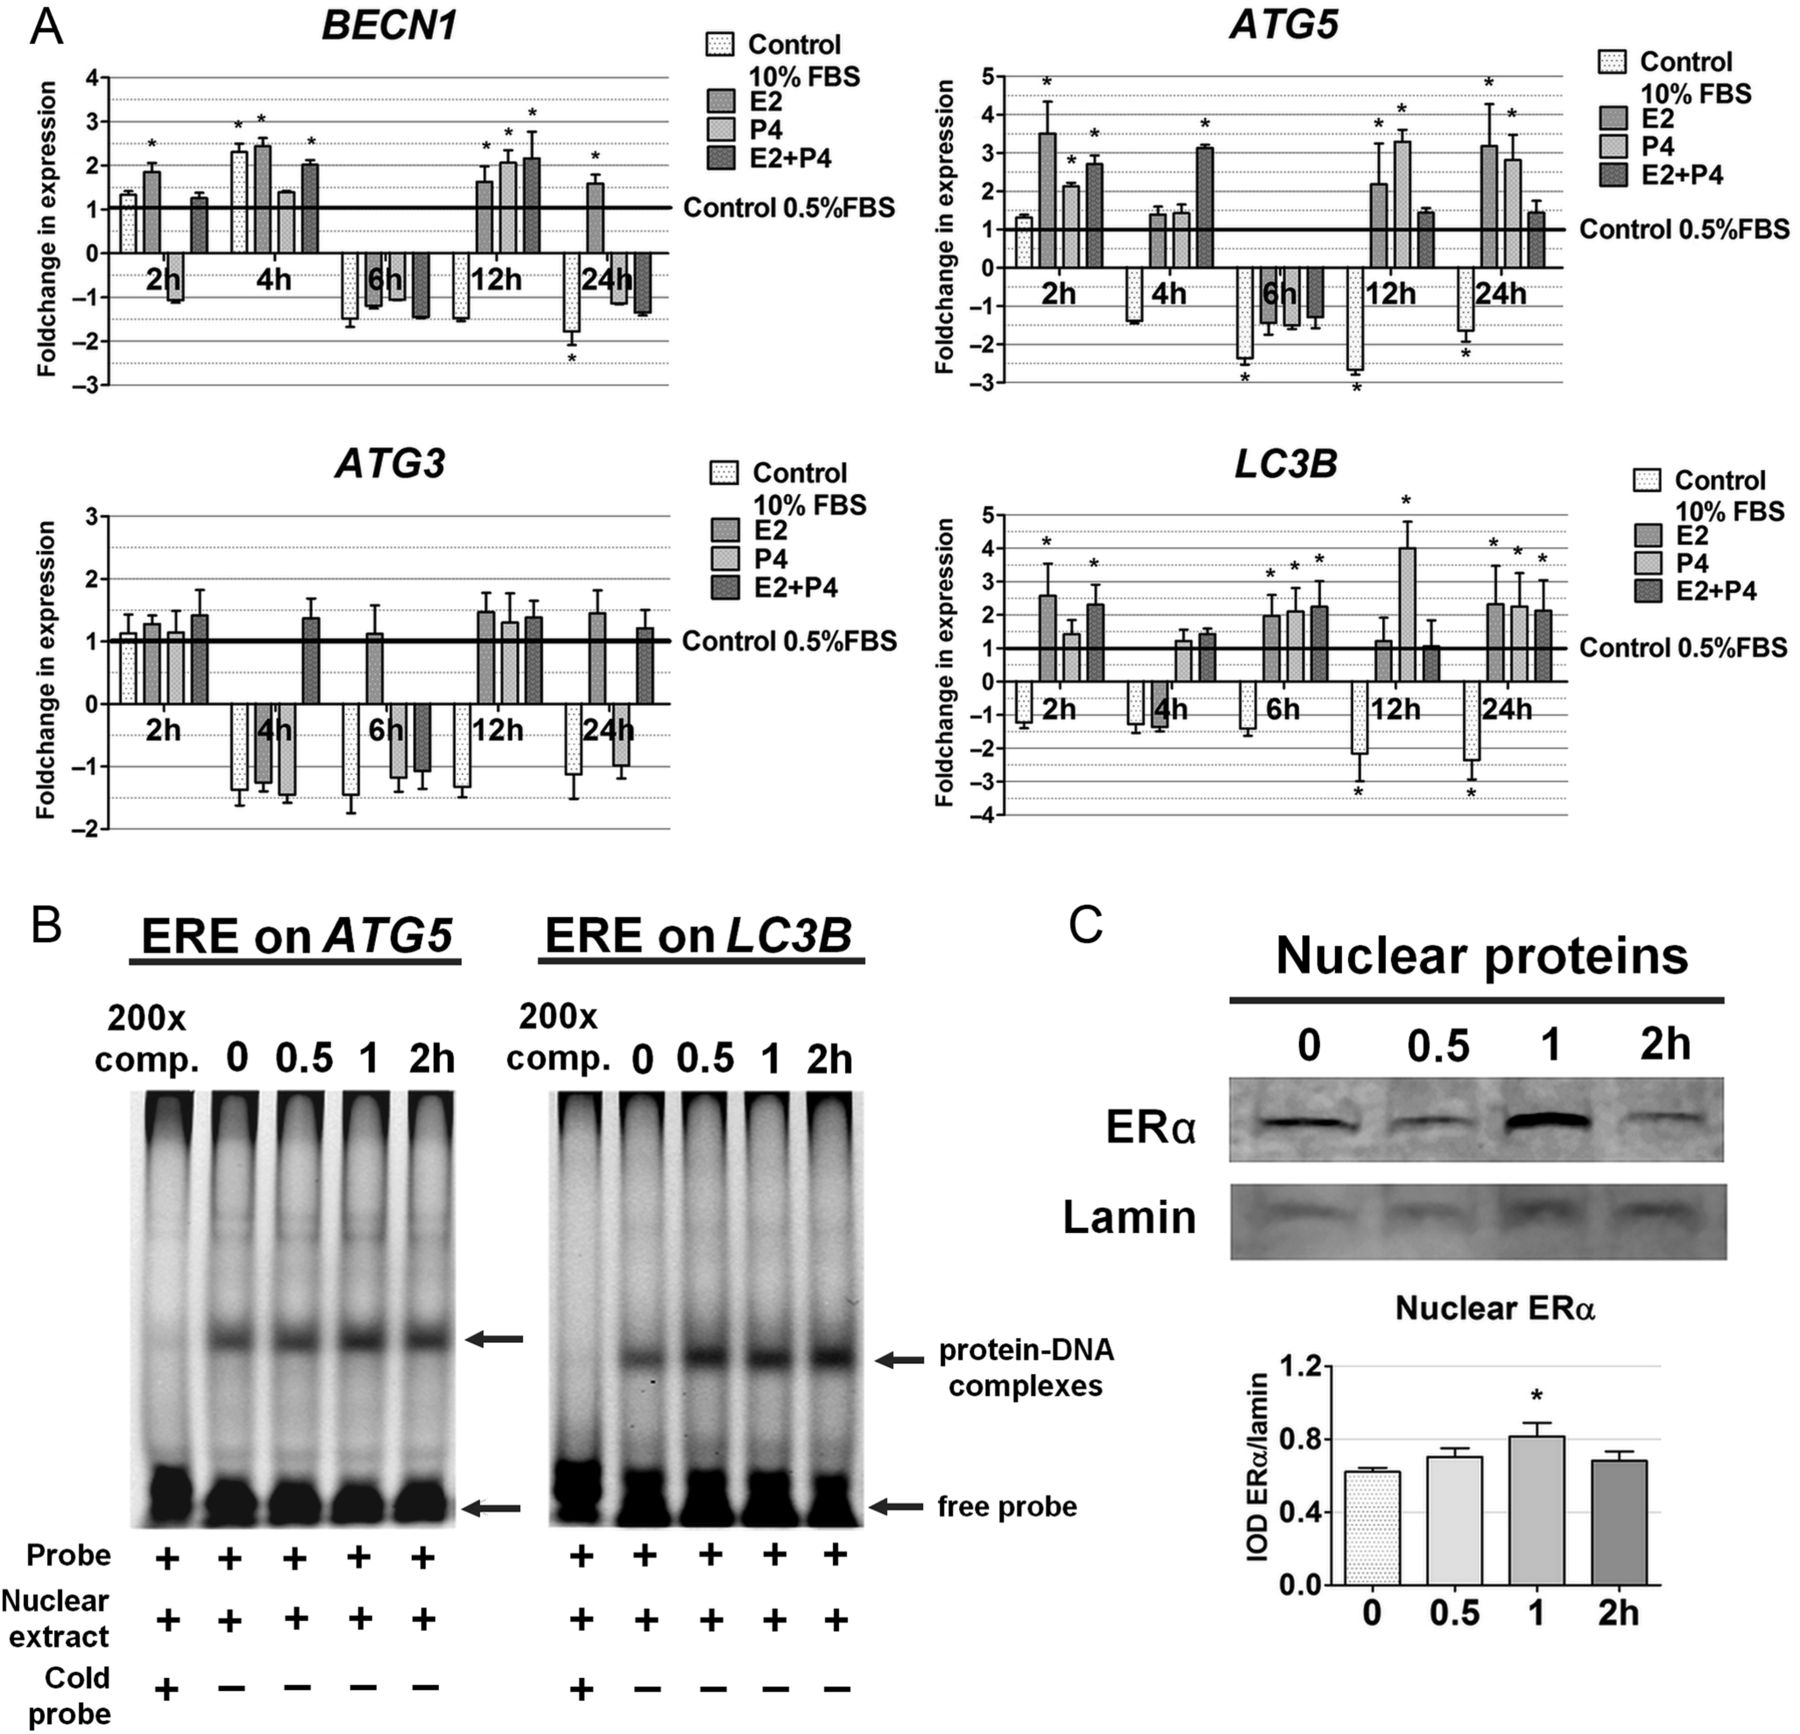 Mechanisms of autophagy induction by sex steroids in bovine mammary